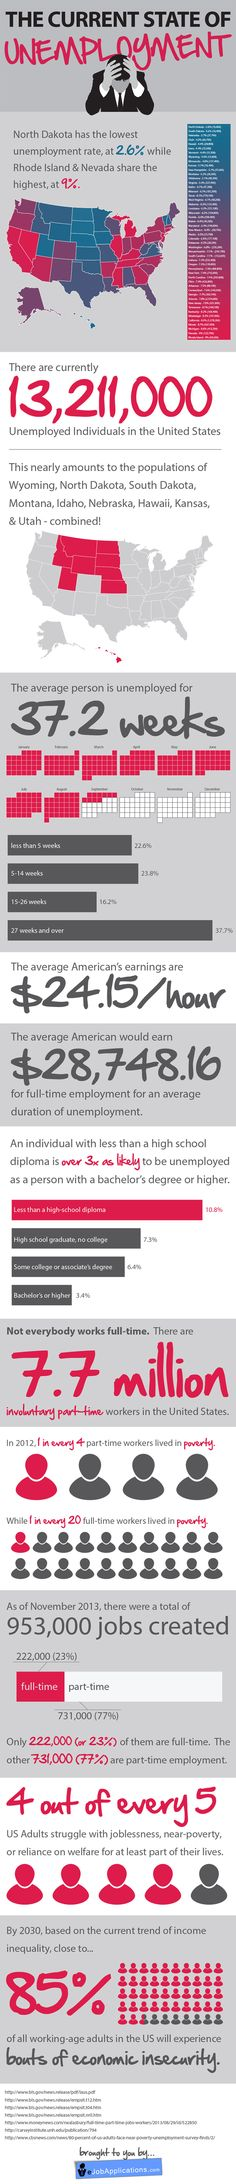 The Current State of Unemployment [INFOGRAPHIC]